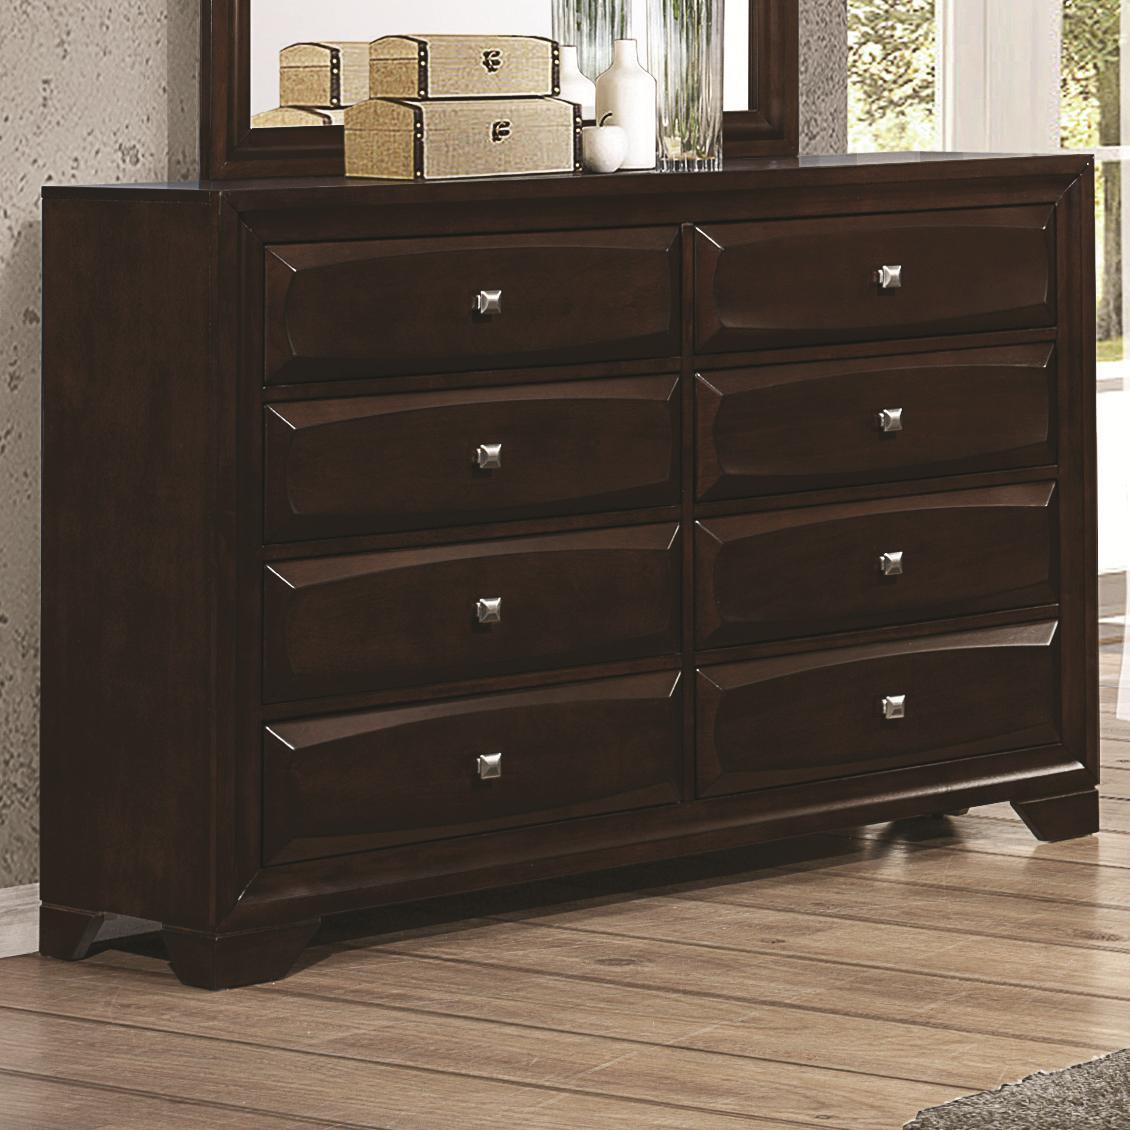 Coaster Jaxson Dresser - Item Number: 203483